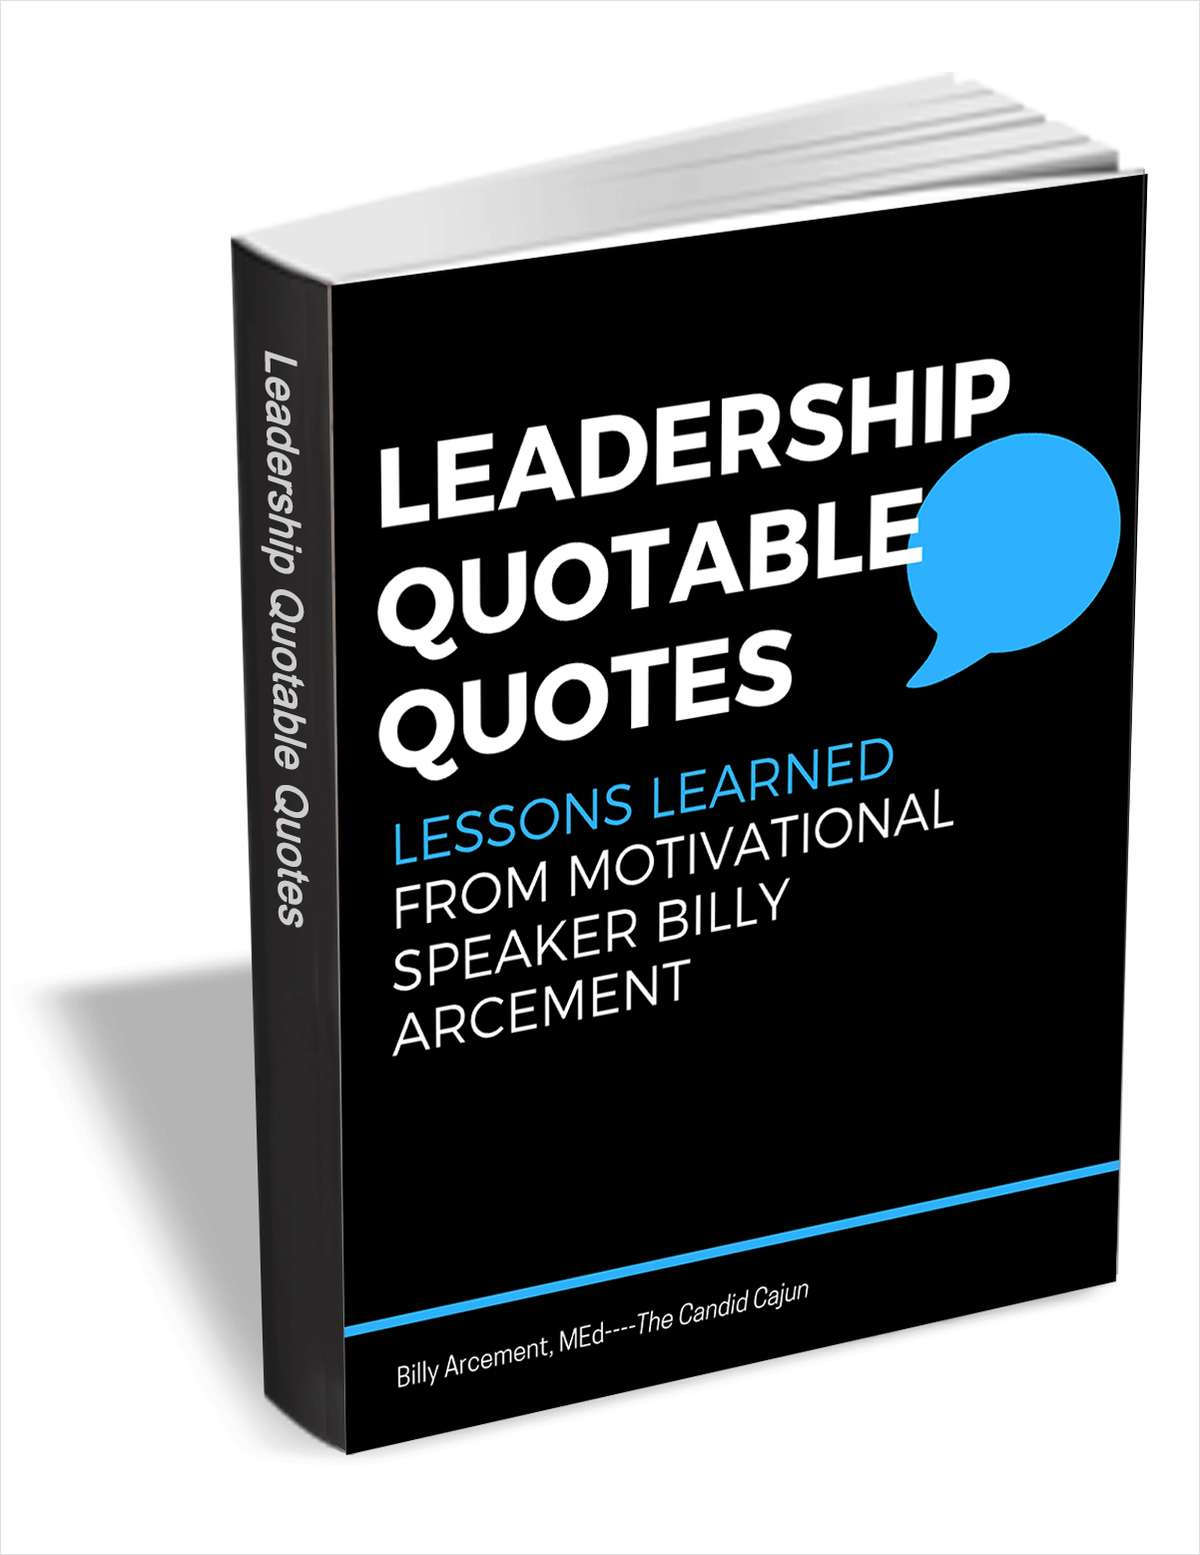 Leadership Quotable Quotes - Lessons Learned from Motivational ... on famous hr quotes, hr customer service quotes, thoughts and prayers quotes, inspirational monday quotes, funny employee goals quotes, welcoming new manager quotes, hr motivational posters, employee training leader quotes, r h best quotes, thought for the day quotes, positive sales quotes, riding shotgun quotes, hr funny quotes,